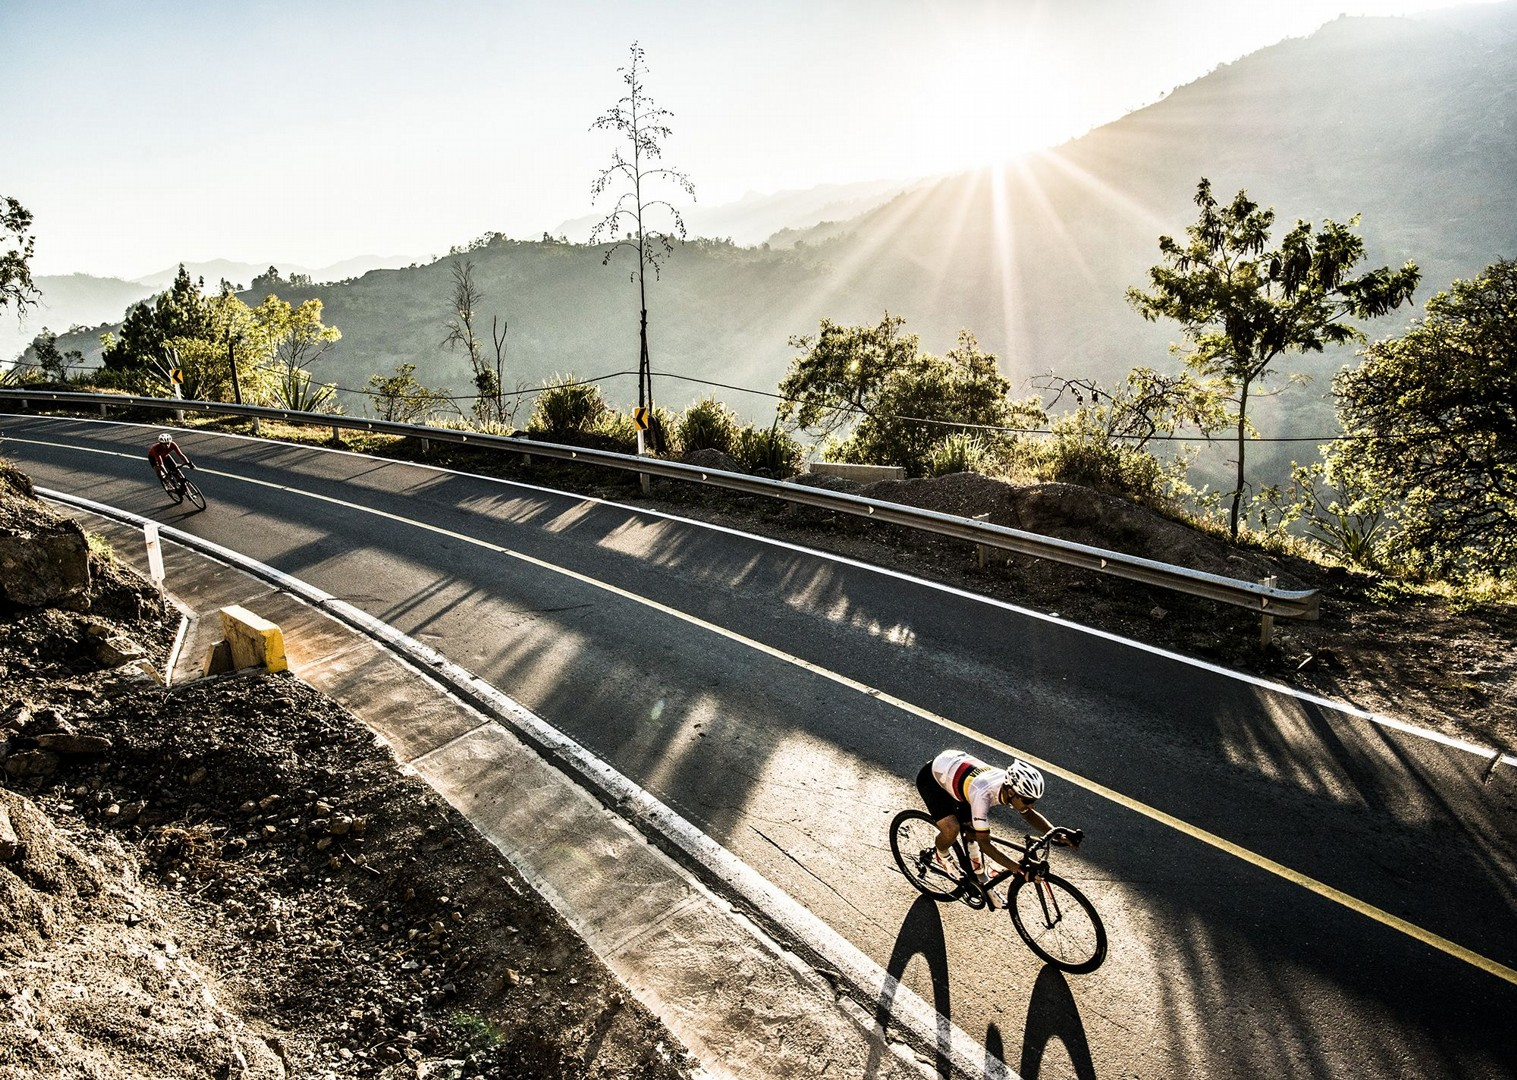 day_2_105.jpg - Colombia - Emerald Mountains - Road Cycling